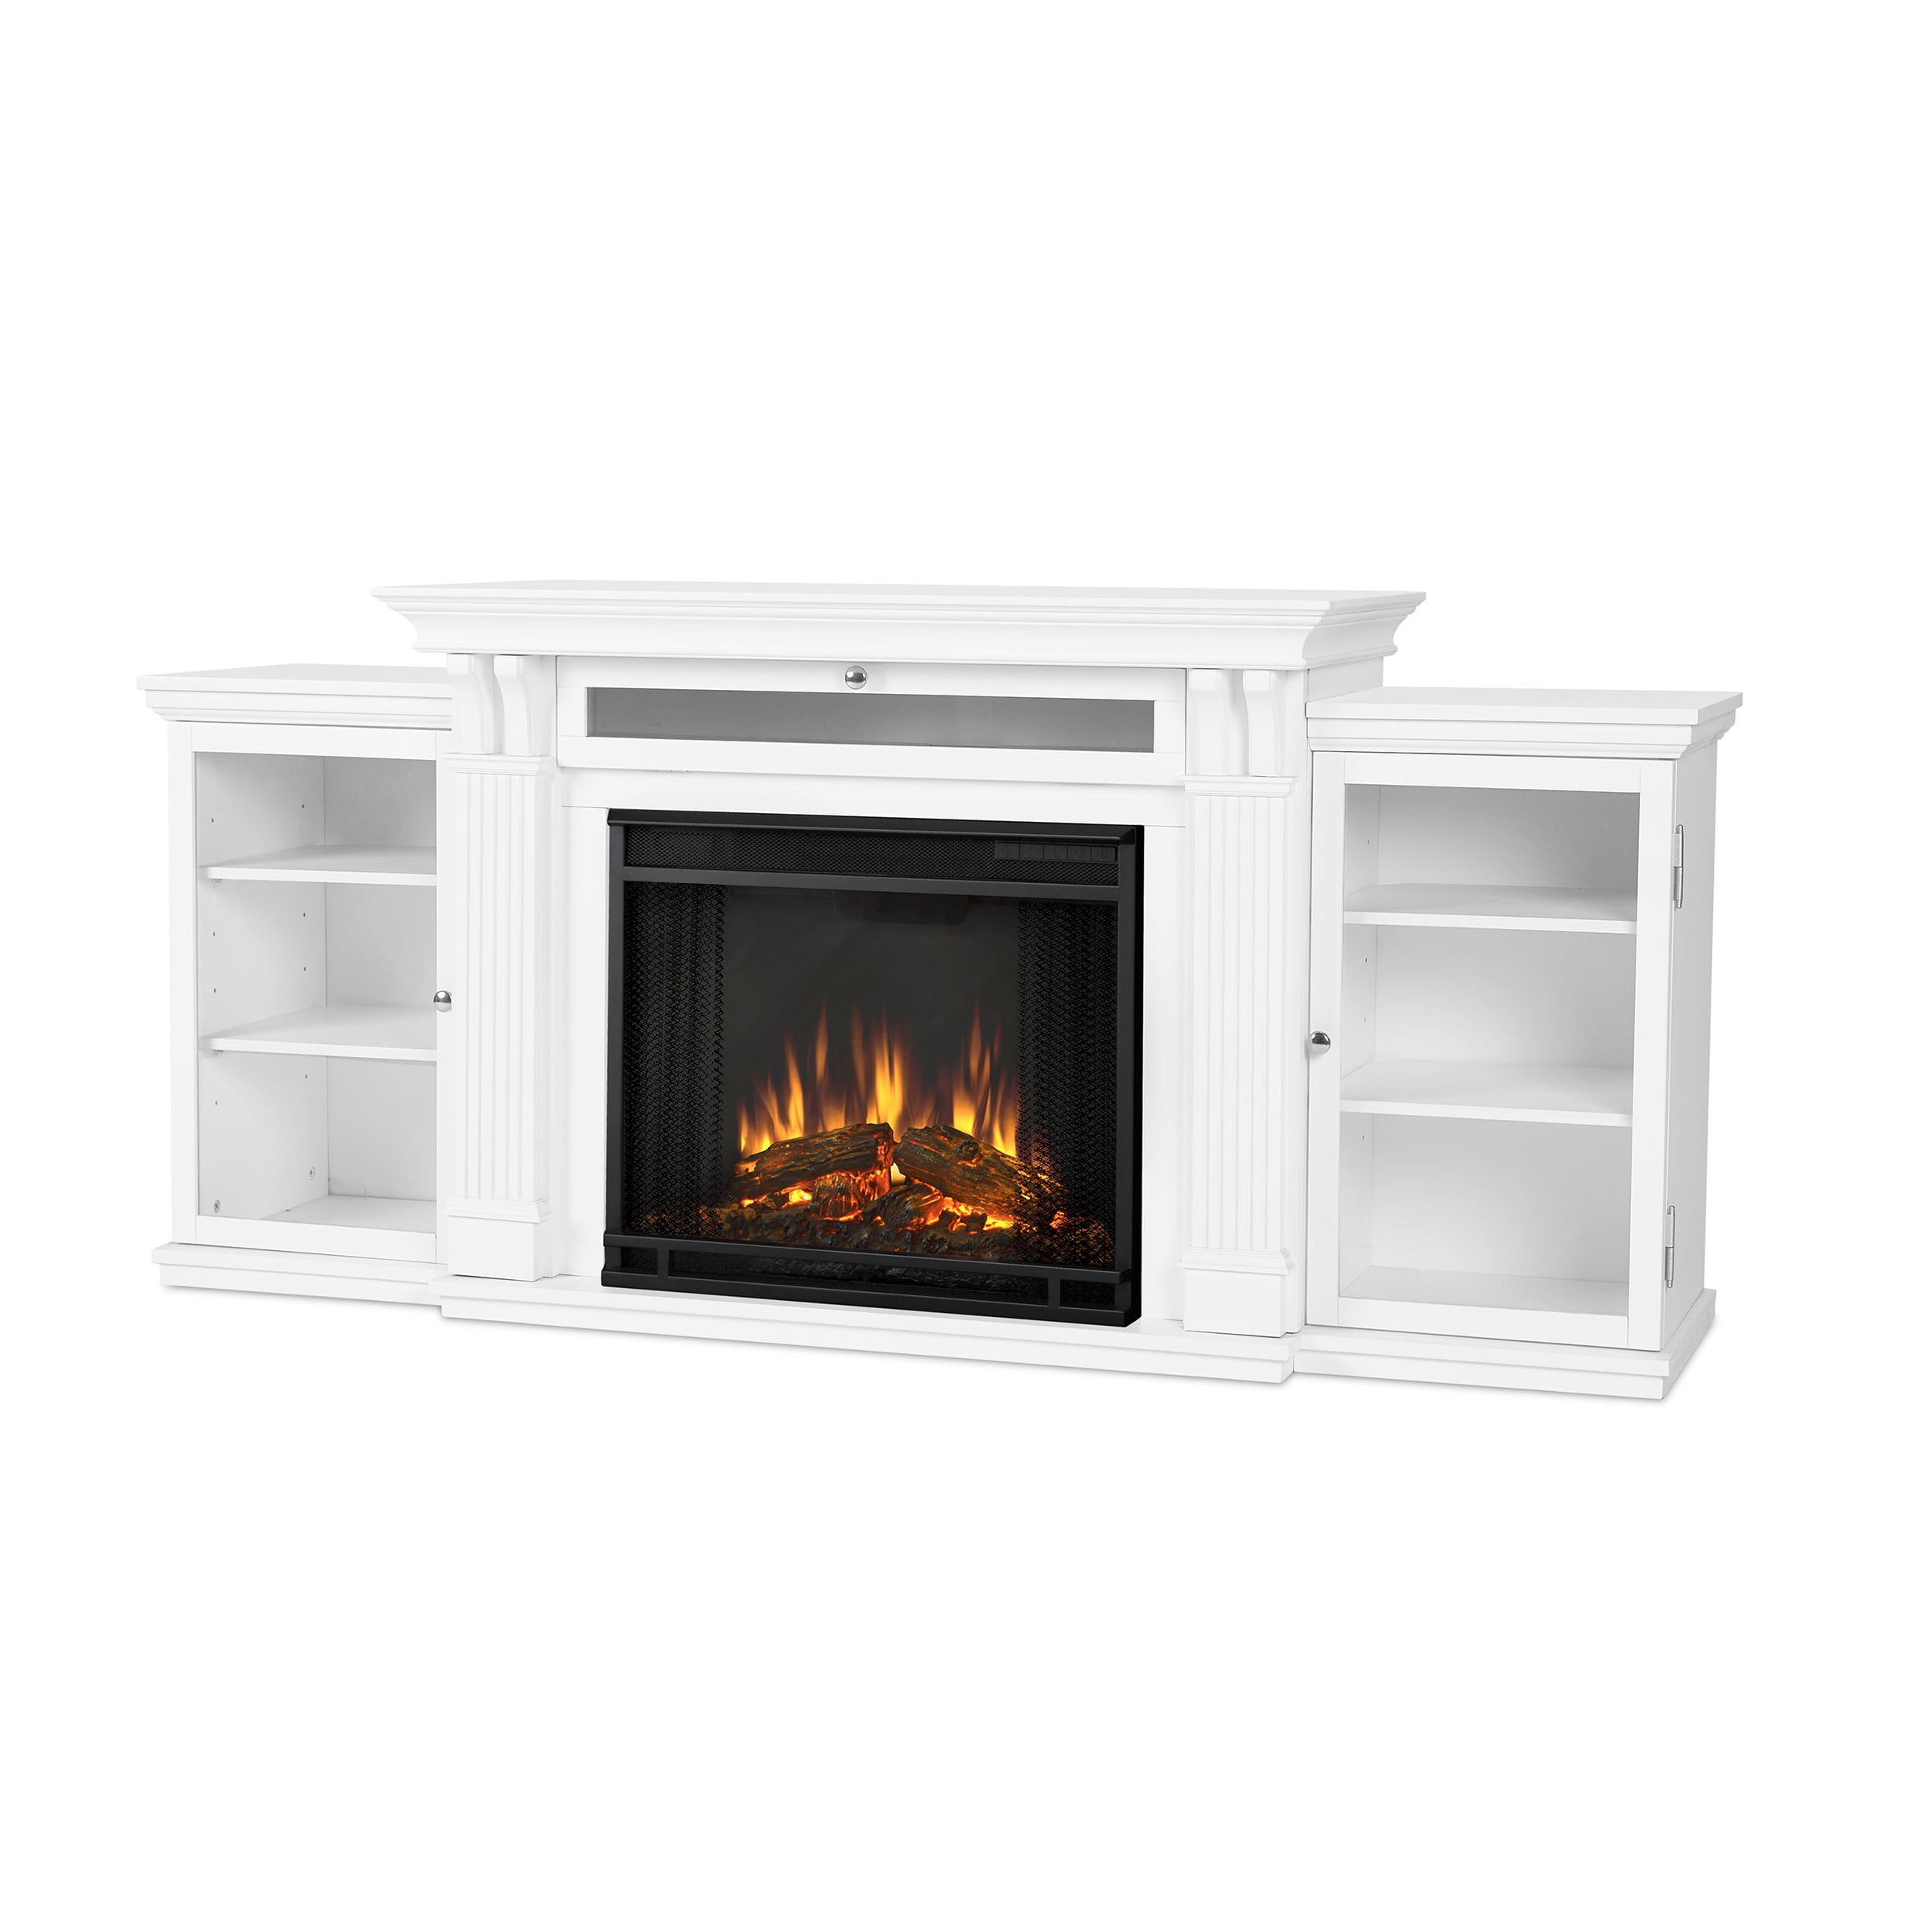 Calie Entertainment Center Electric Fireplace in White by Real Flame